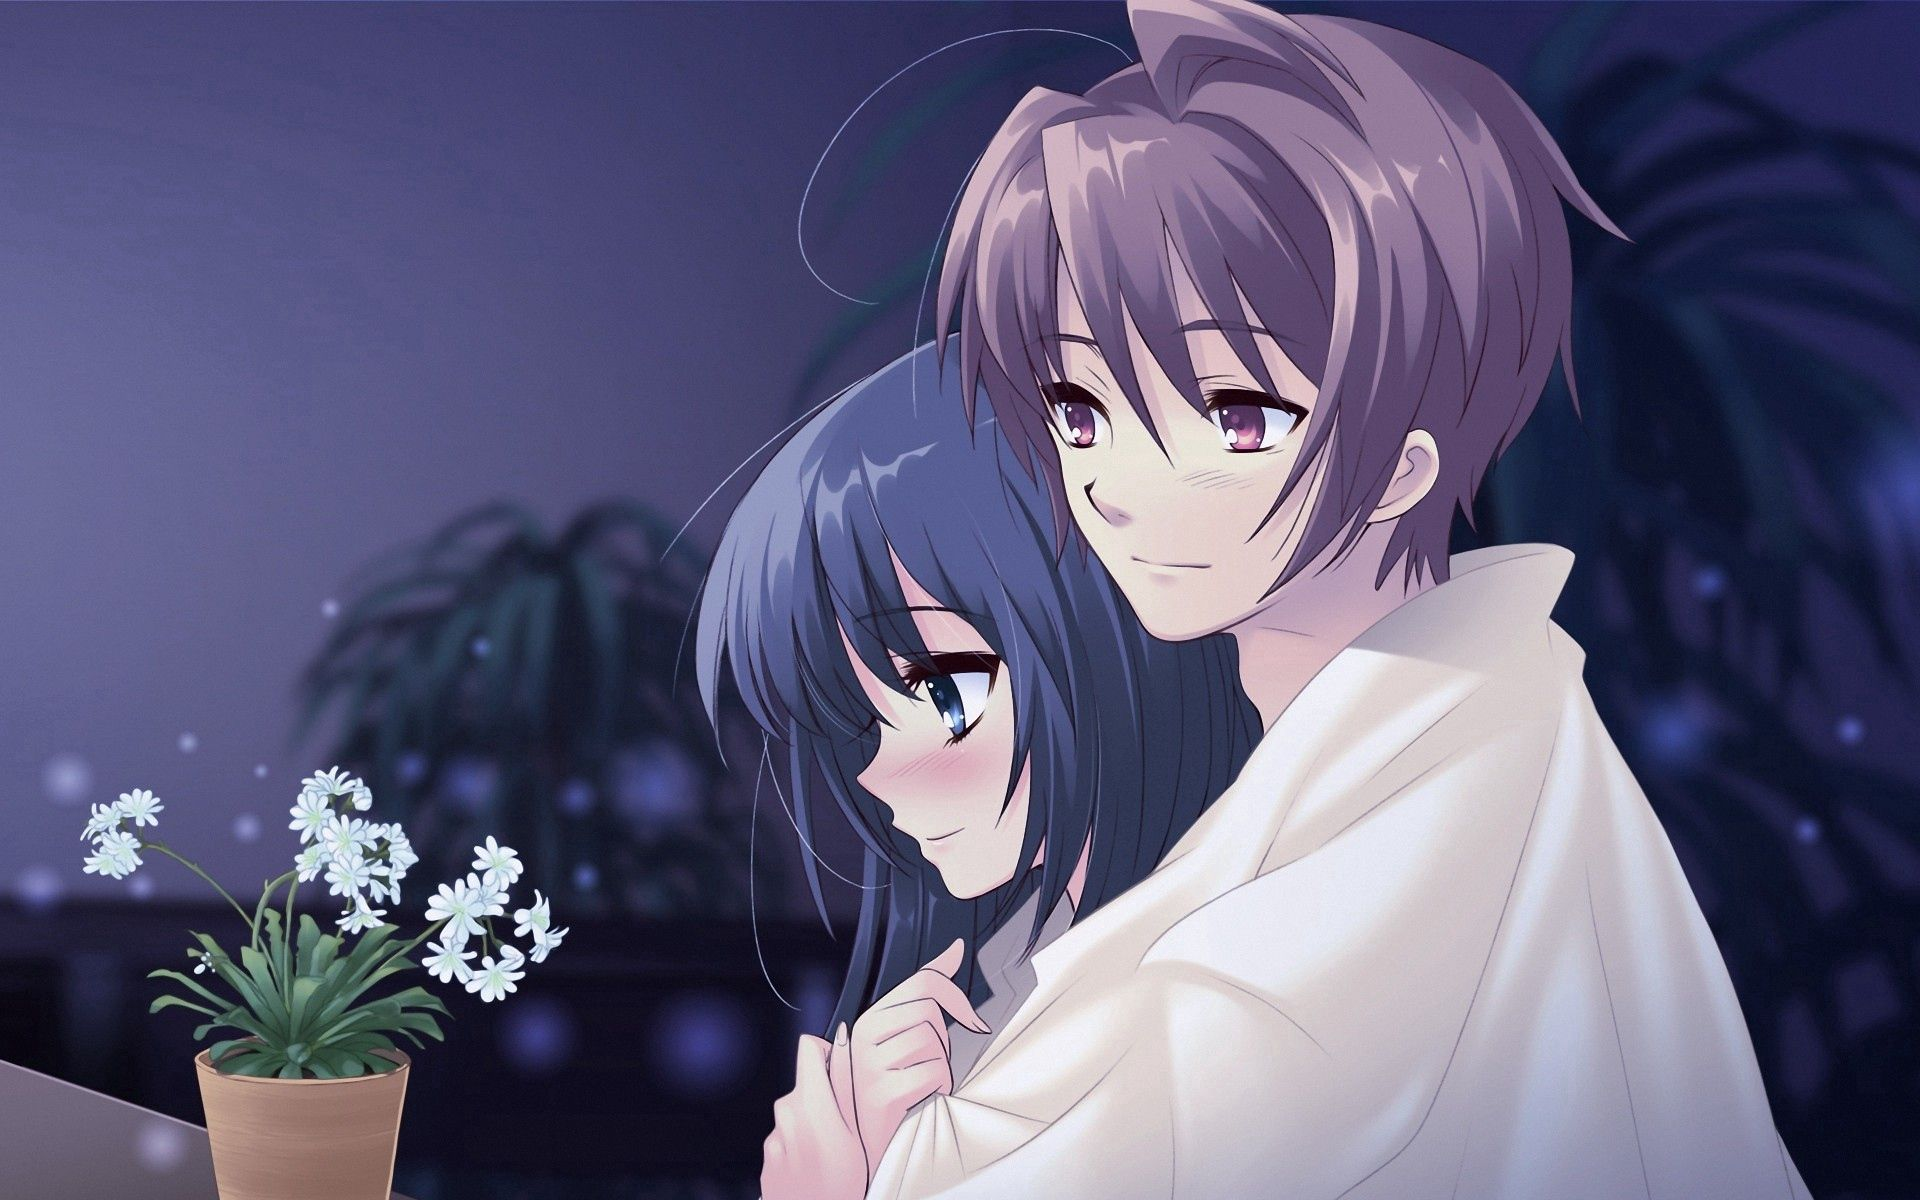 134988 download wallpaper Anime, Guy, Girl, Pot, Flower, Embrace screensavers and pictures for free